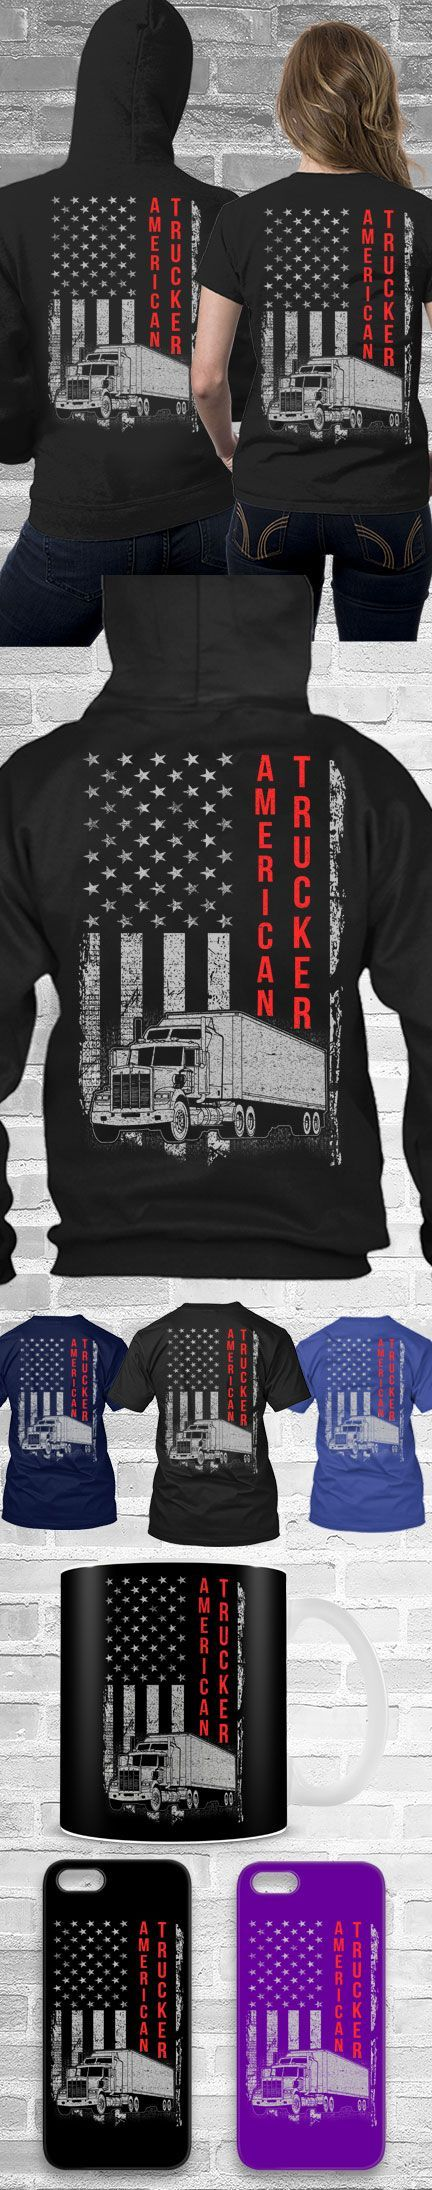 Trucker USA Flag Shirt! Click The Image To Buy It Now or Tag Someone You Want To Buy This For. #trucker